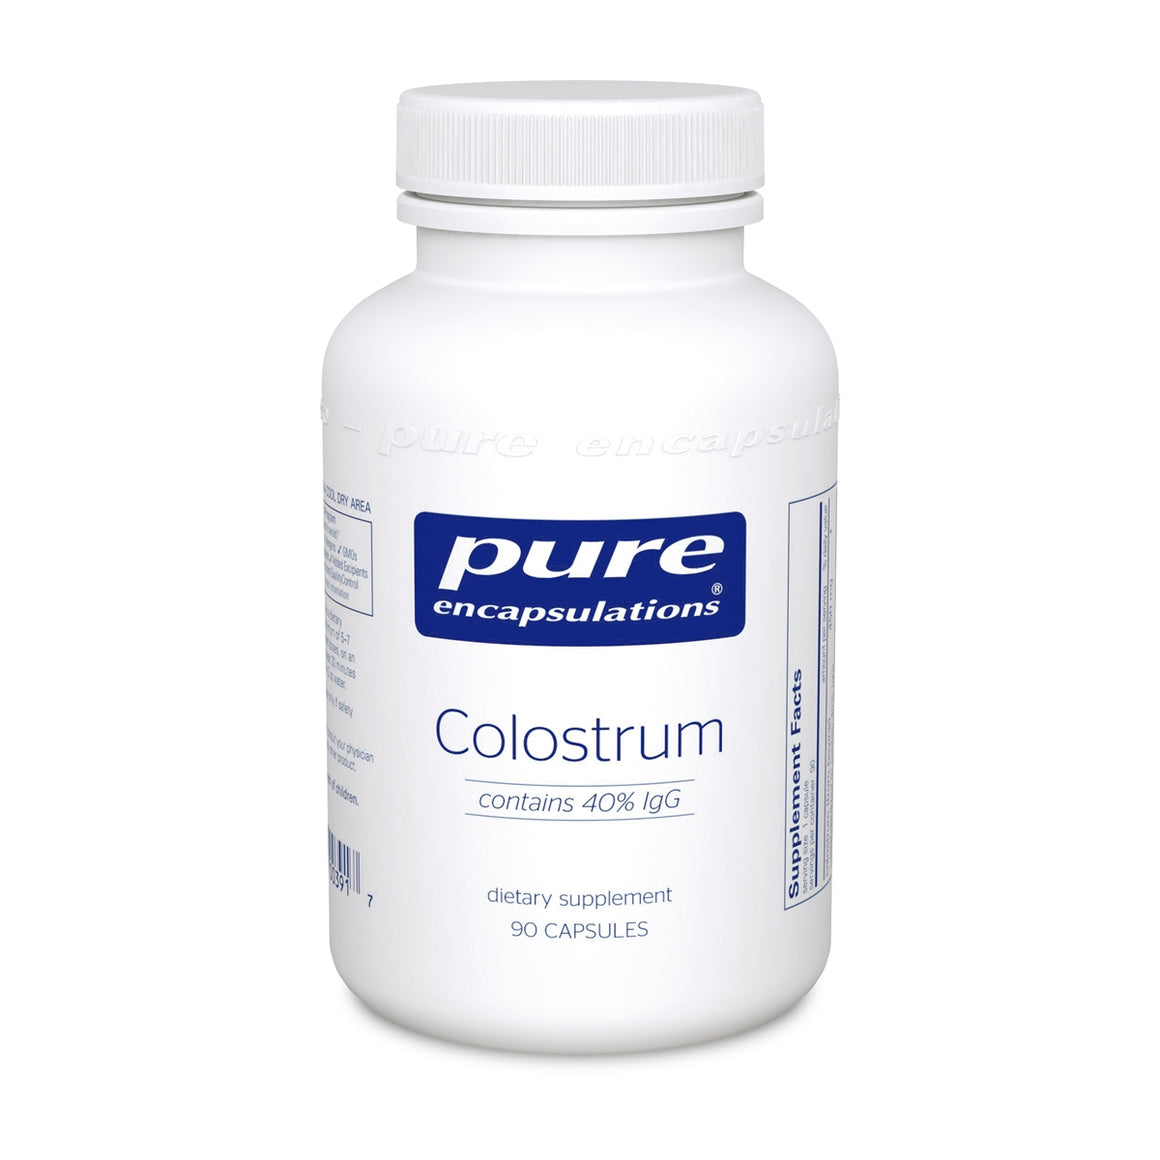 A bottle of Pure Colostrum 40% IgG